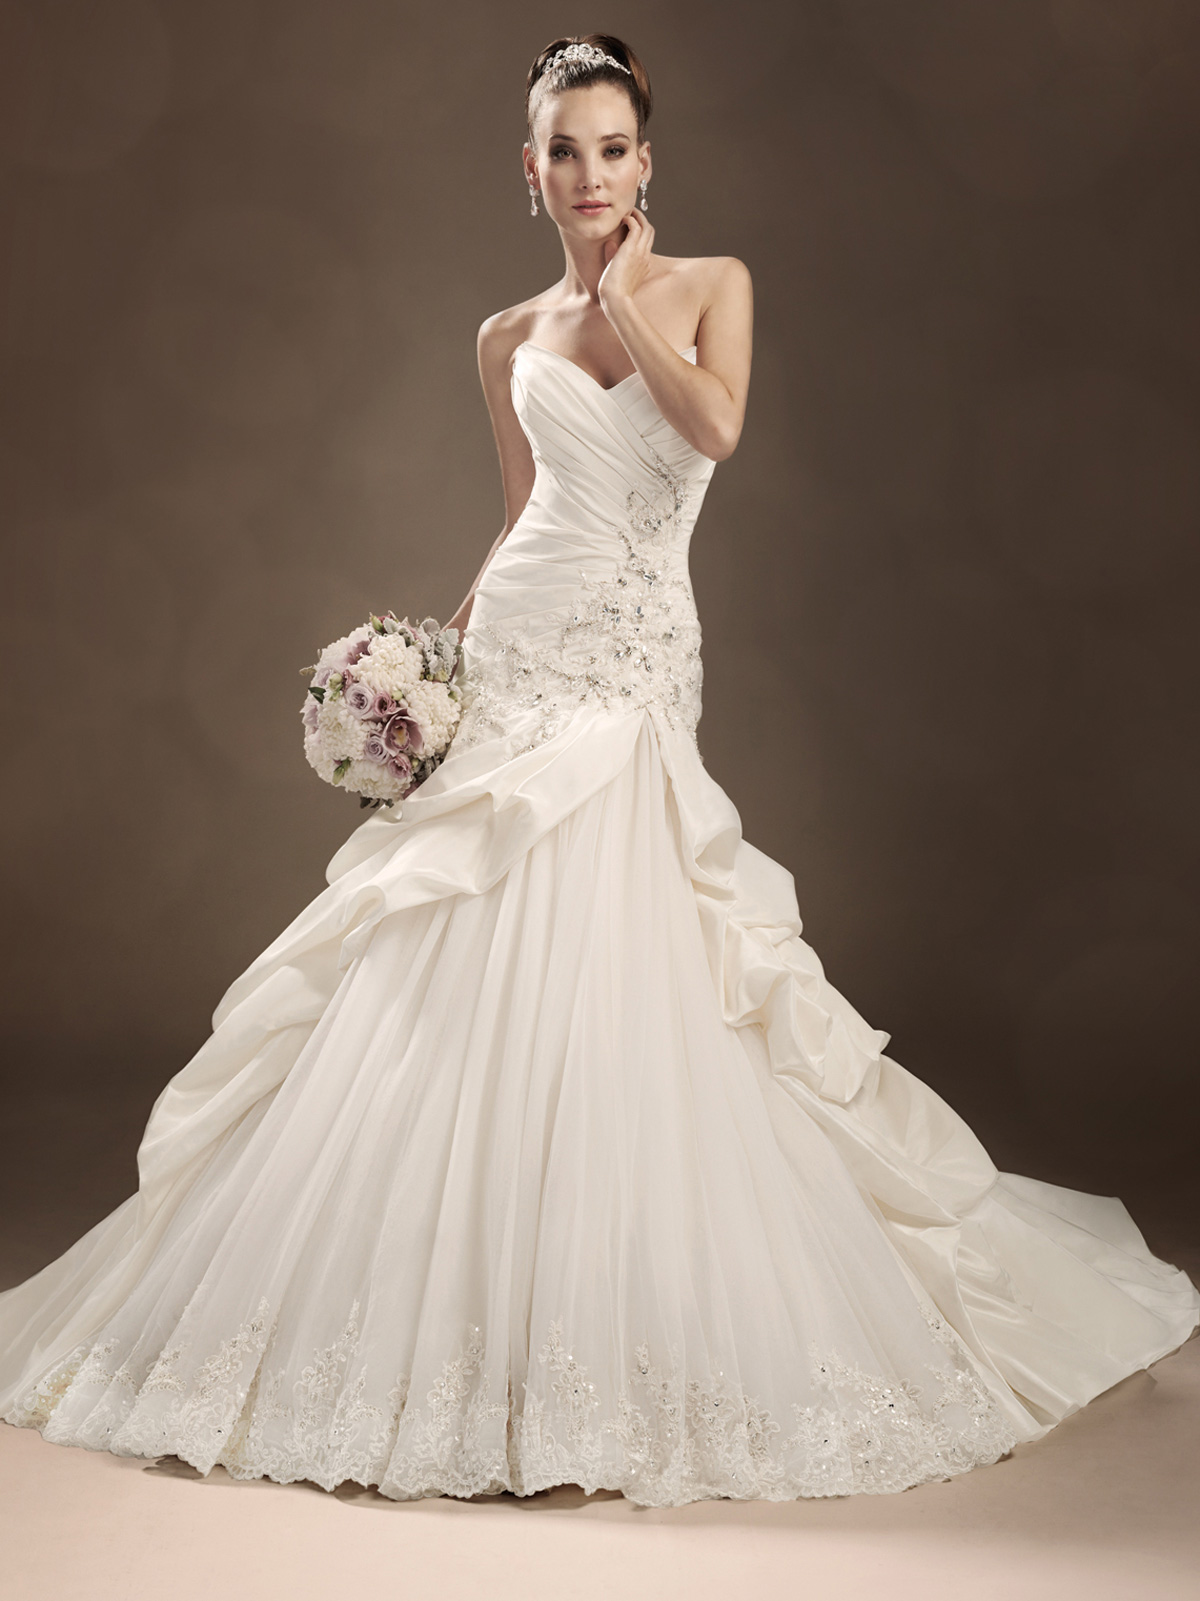 split skirt wedding gown